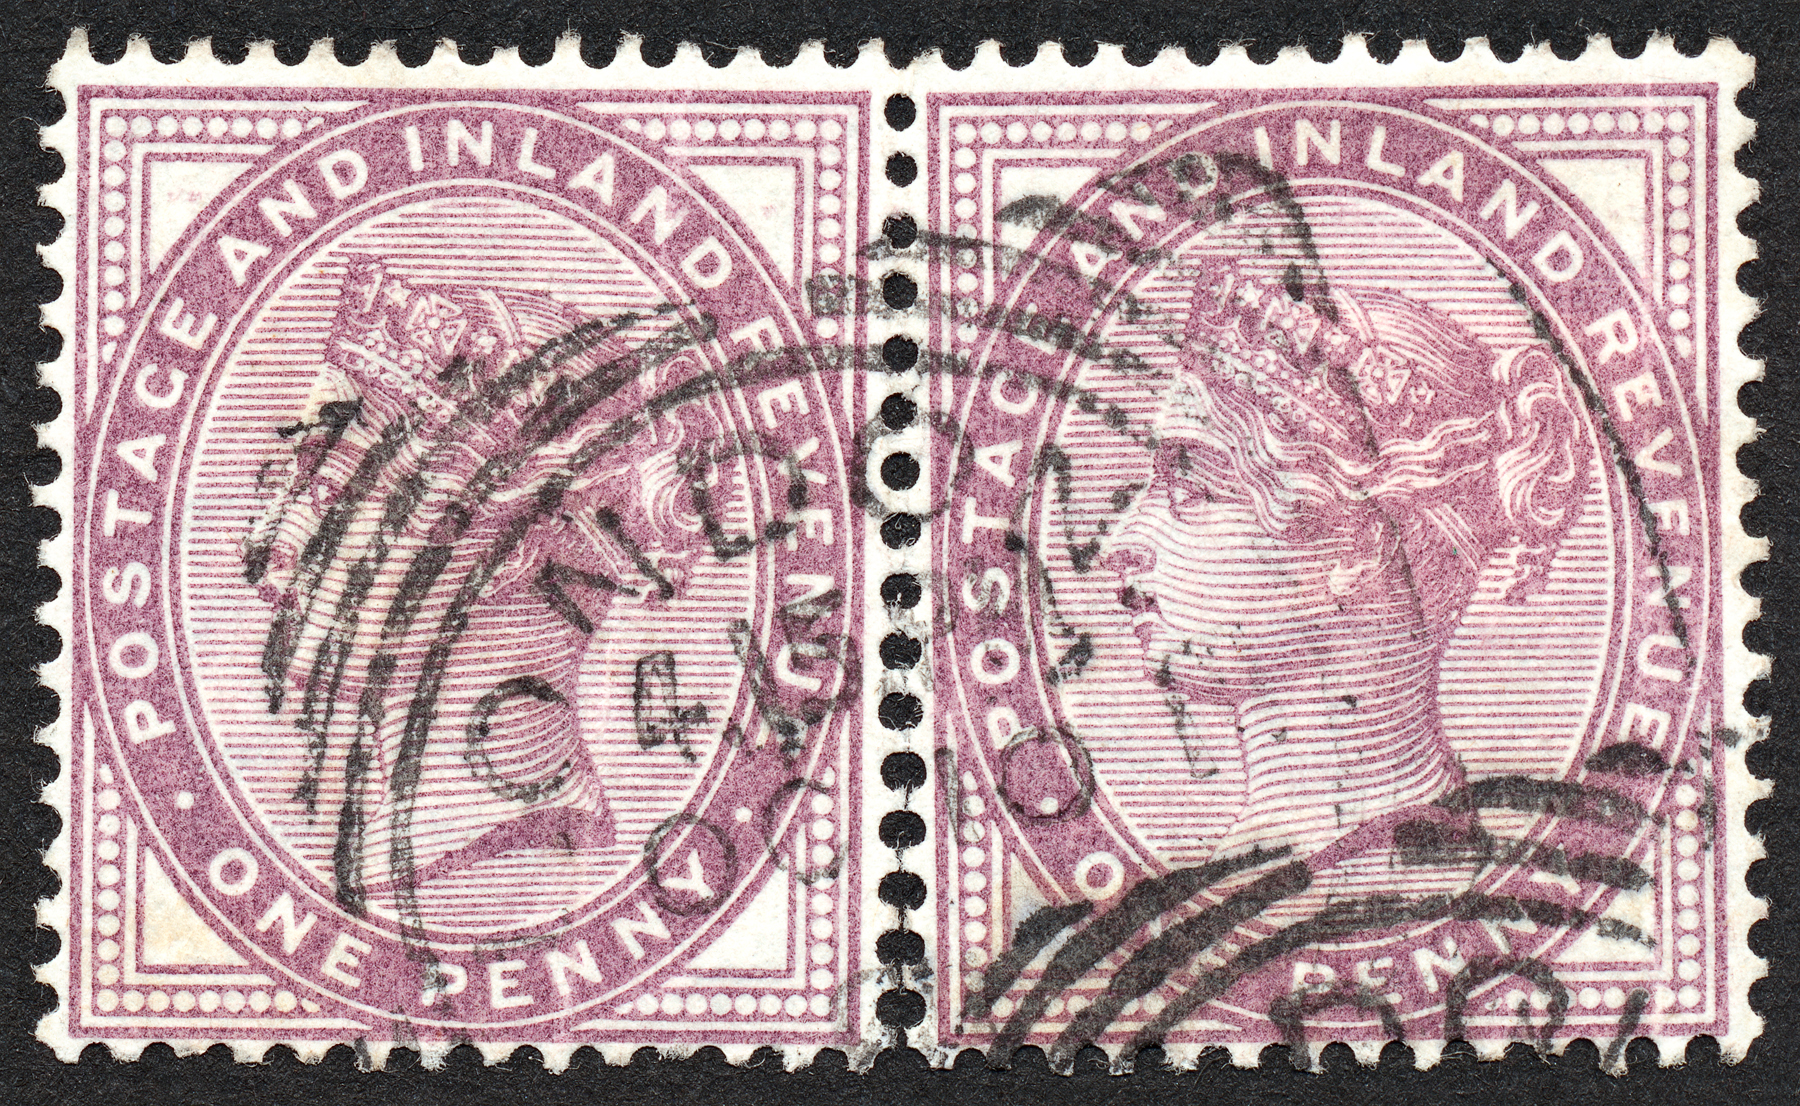 Double violet queen victoria stamps photo